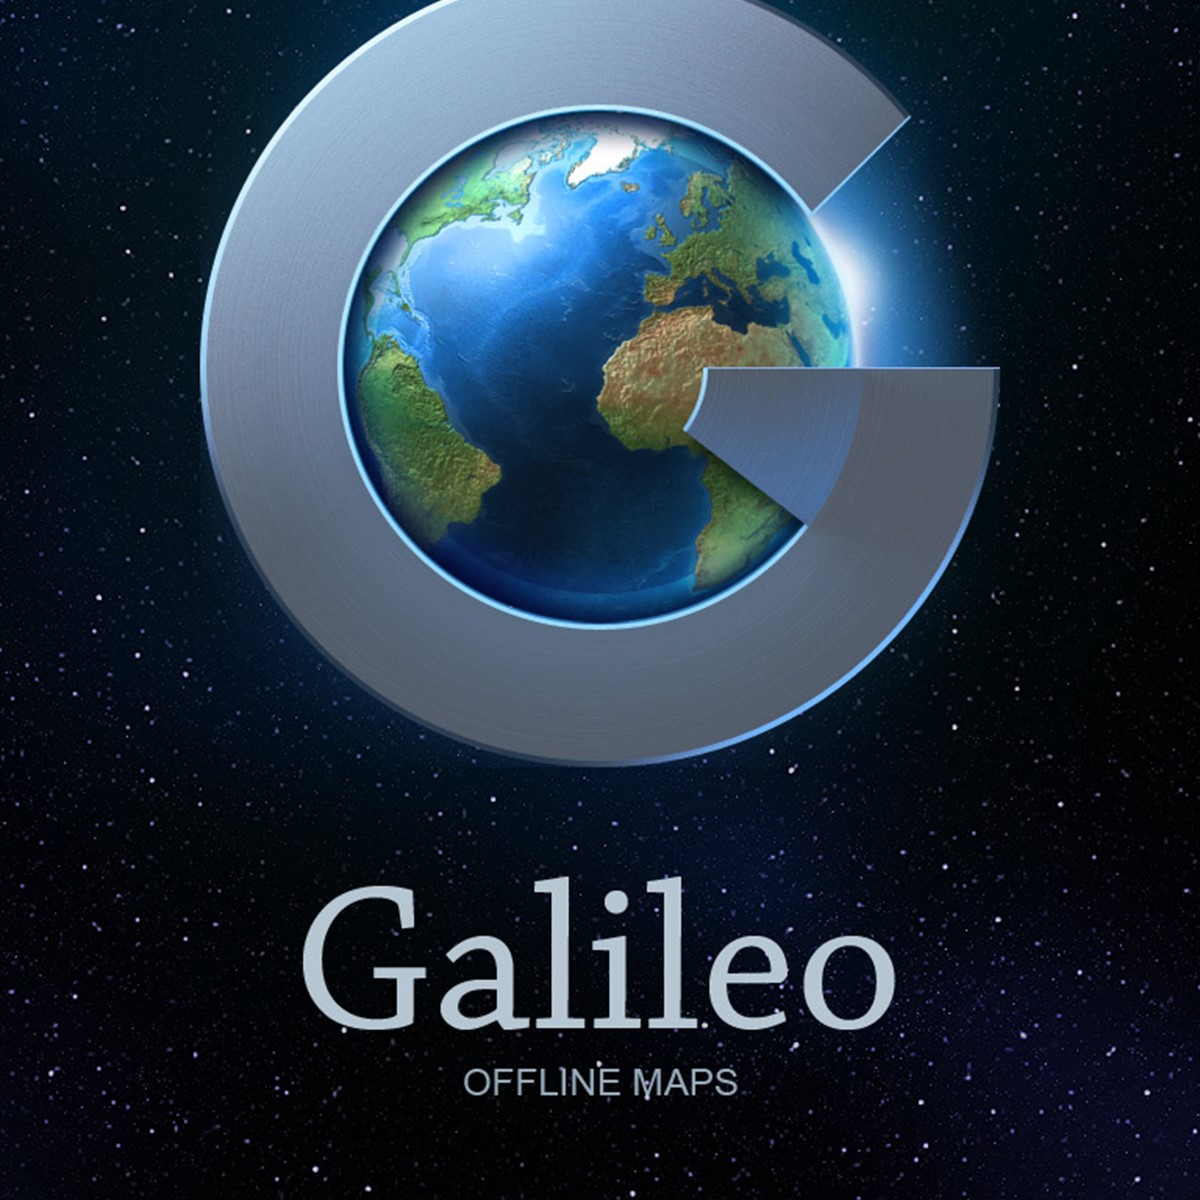 Galileo Offline Maps Alternatives And Similar Apps